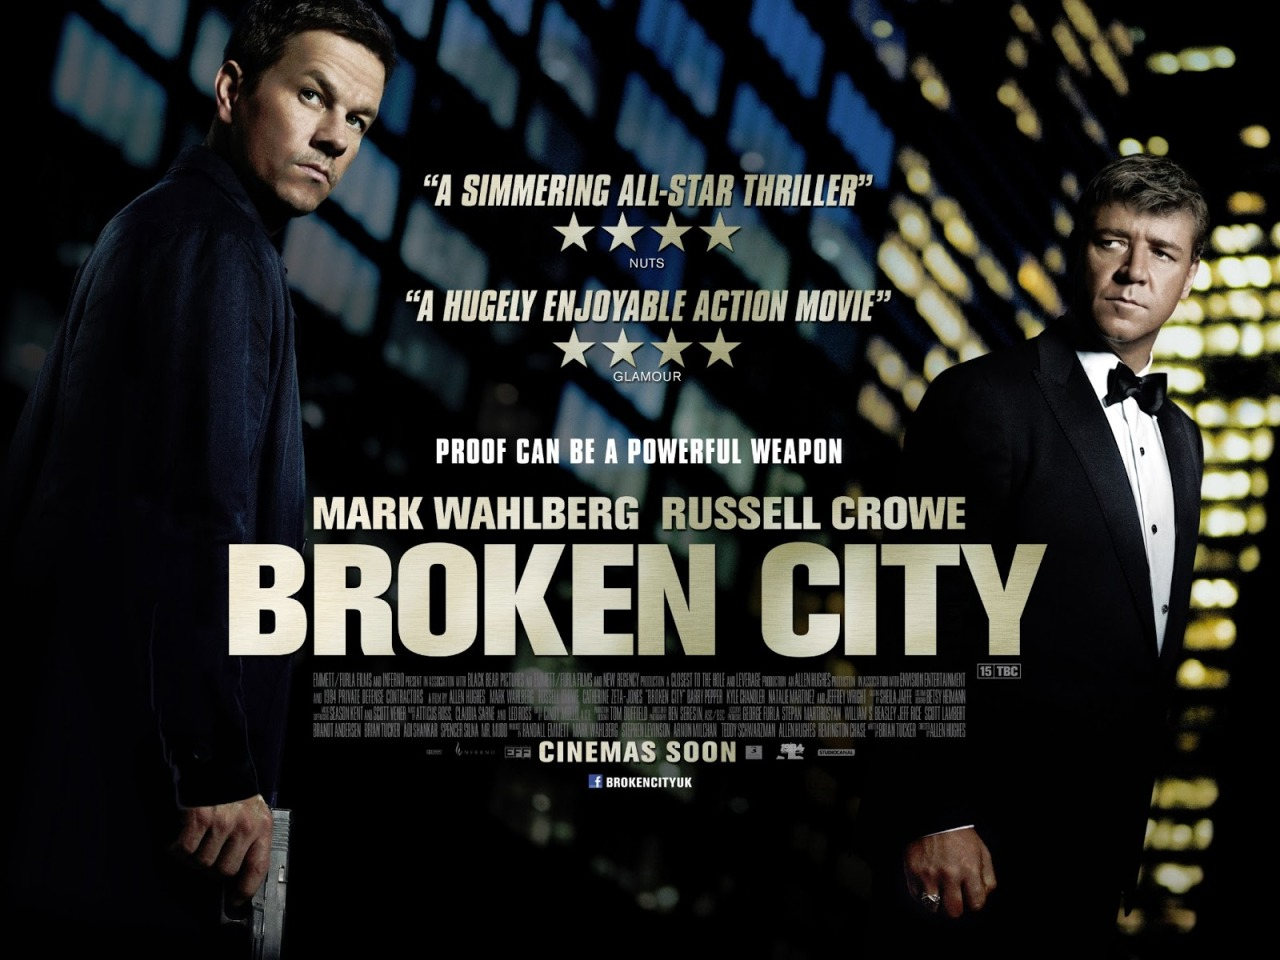 Broken City (2013)  In a city rife with injustice, ex-cop Billy Taggart seeks redemption and revenge after being double-crossed and then framed by its most powerful figure: Mayor Nicholas Hostetler.  It wasn't anything you haven't seen before. Very very very slow pace. I am sure there are better movies out there. The trailer is kind of good, check it out by clicking the poster above (it will take you to YouTube).